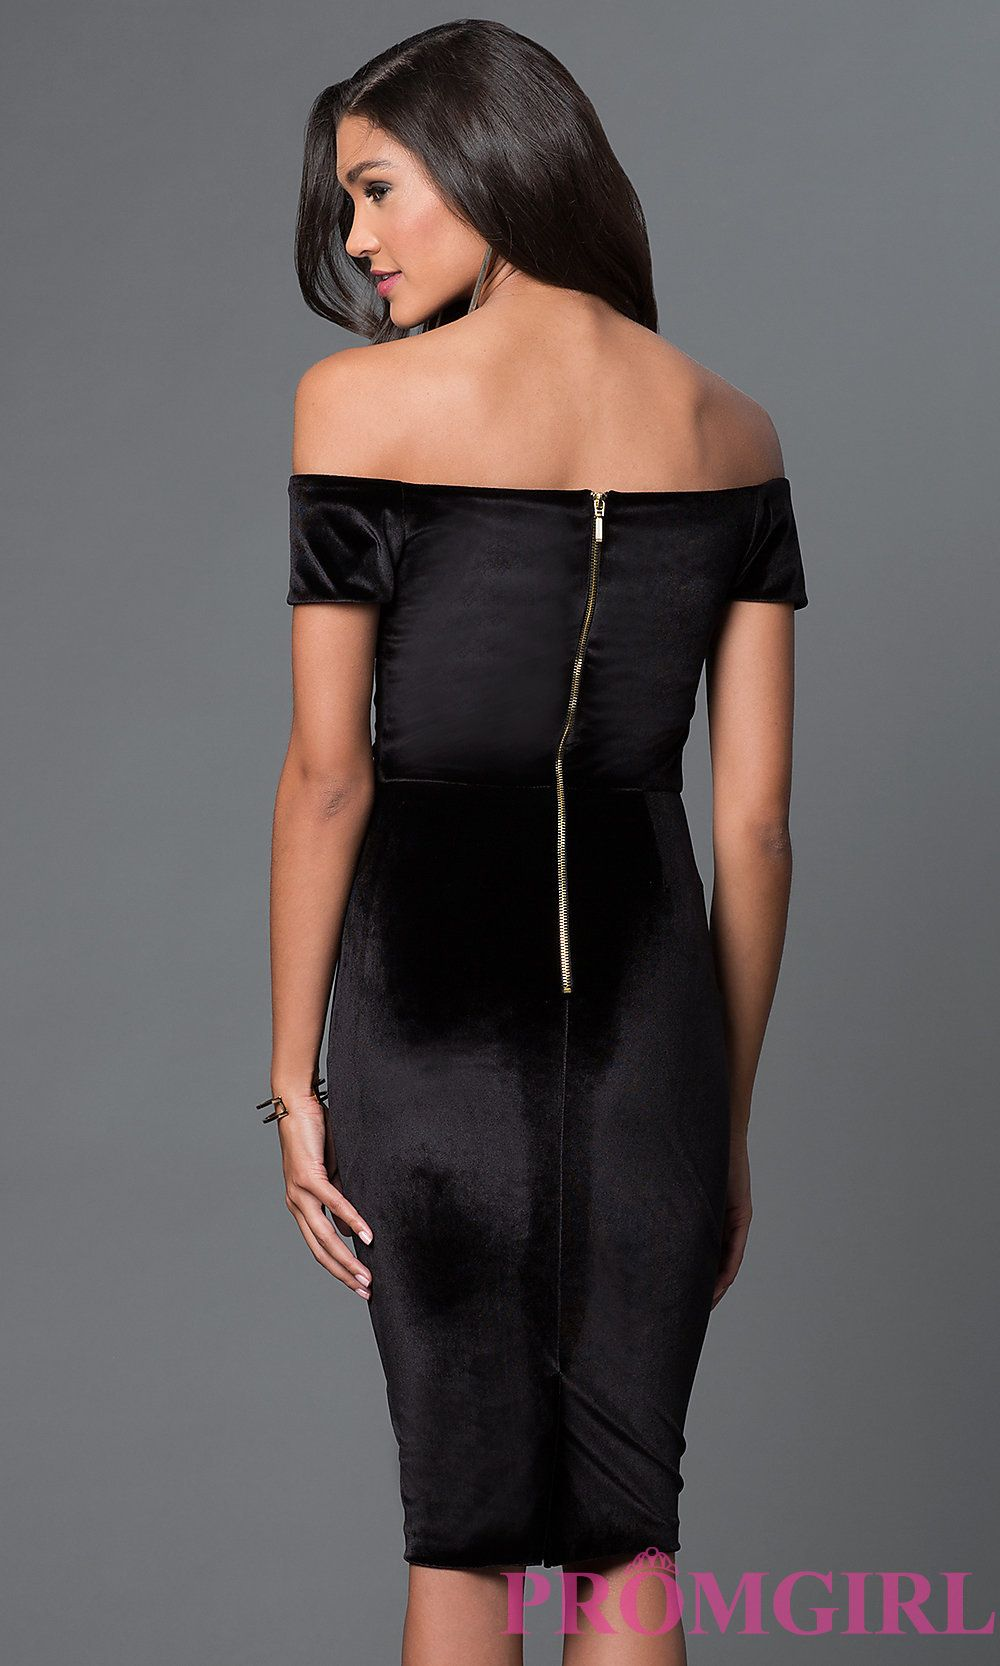 Prom dresses celebrity dresses sexy evening gowns black off the